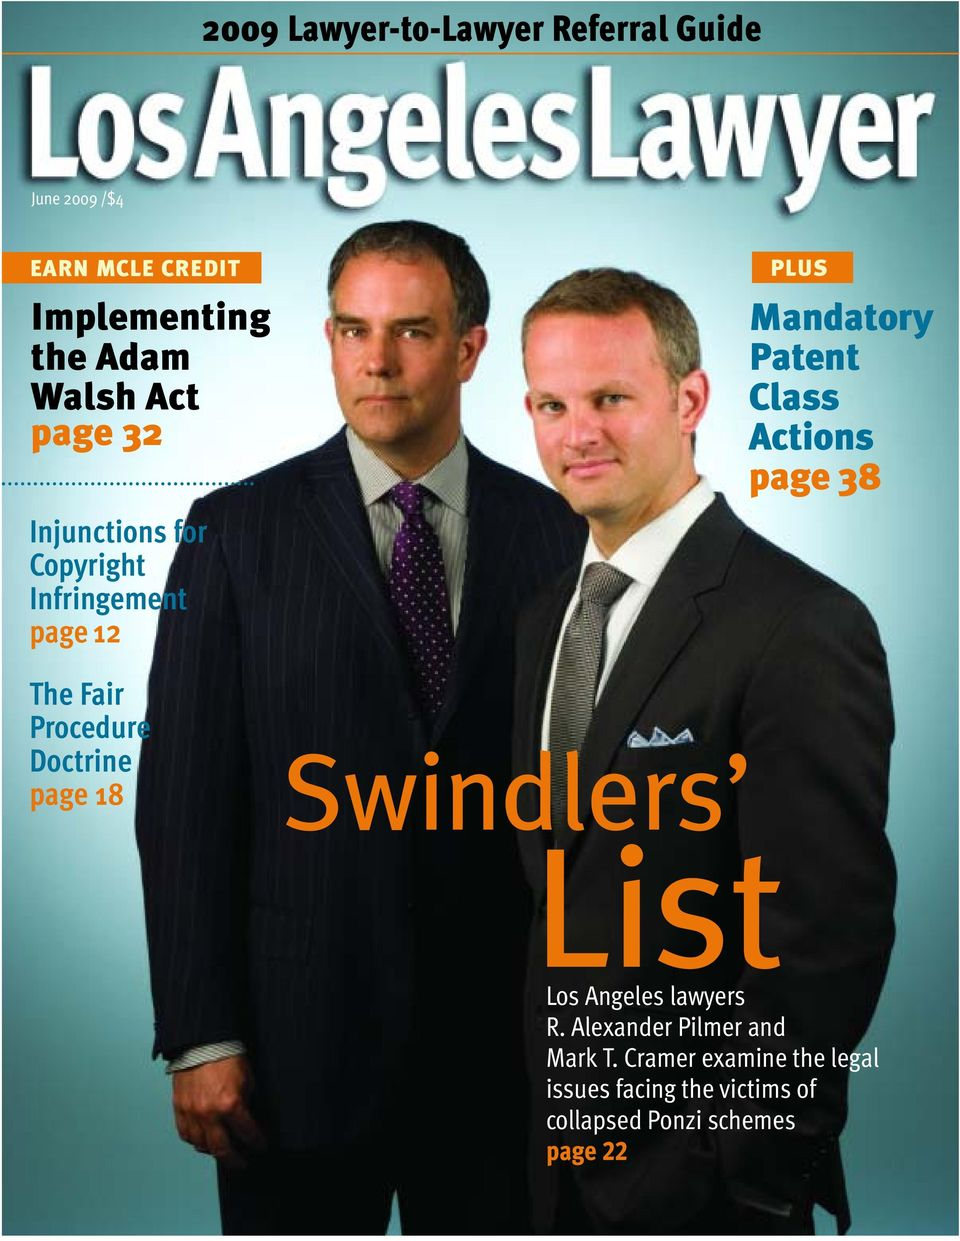 PLUS Mandatory Patent Class Actions page 38 Swindlers List Los Angeles lawyers R.